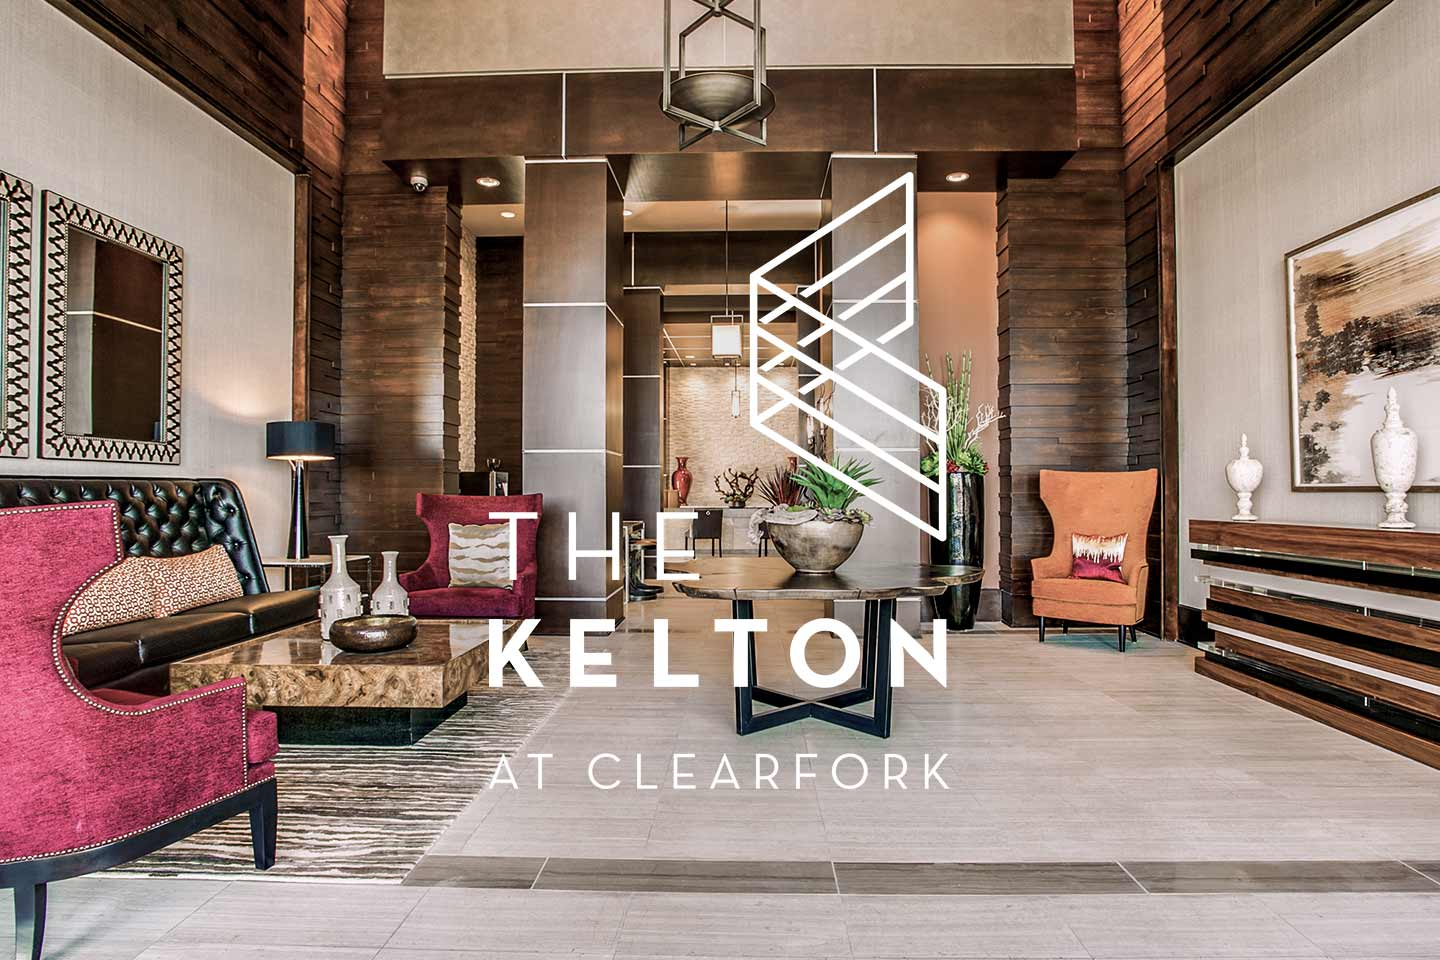 The Kelton at Clearfork Fort Worth Texas Developed by StreetLights Residential